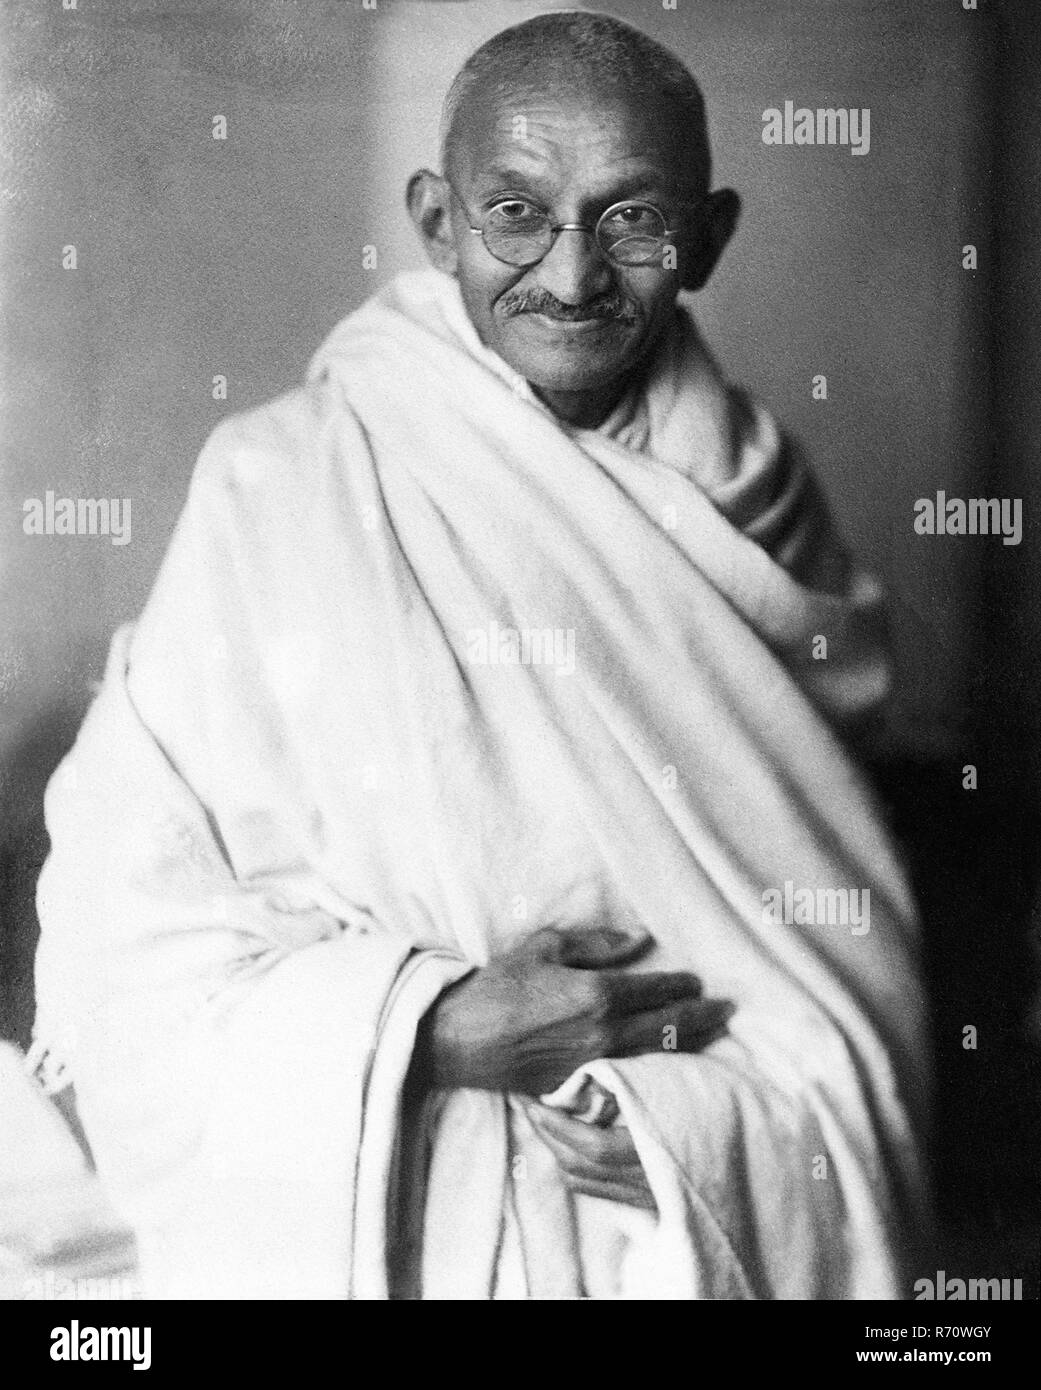 A rare studio photograph of Mahatma Gandhi taken in London, England, at the request of Lord Irwin, 1931 - MODEL RELEASE NOT AVAILABLE - Stock Image